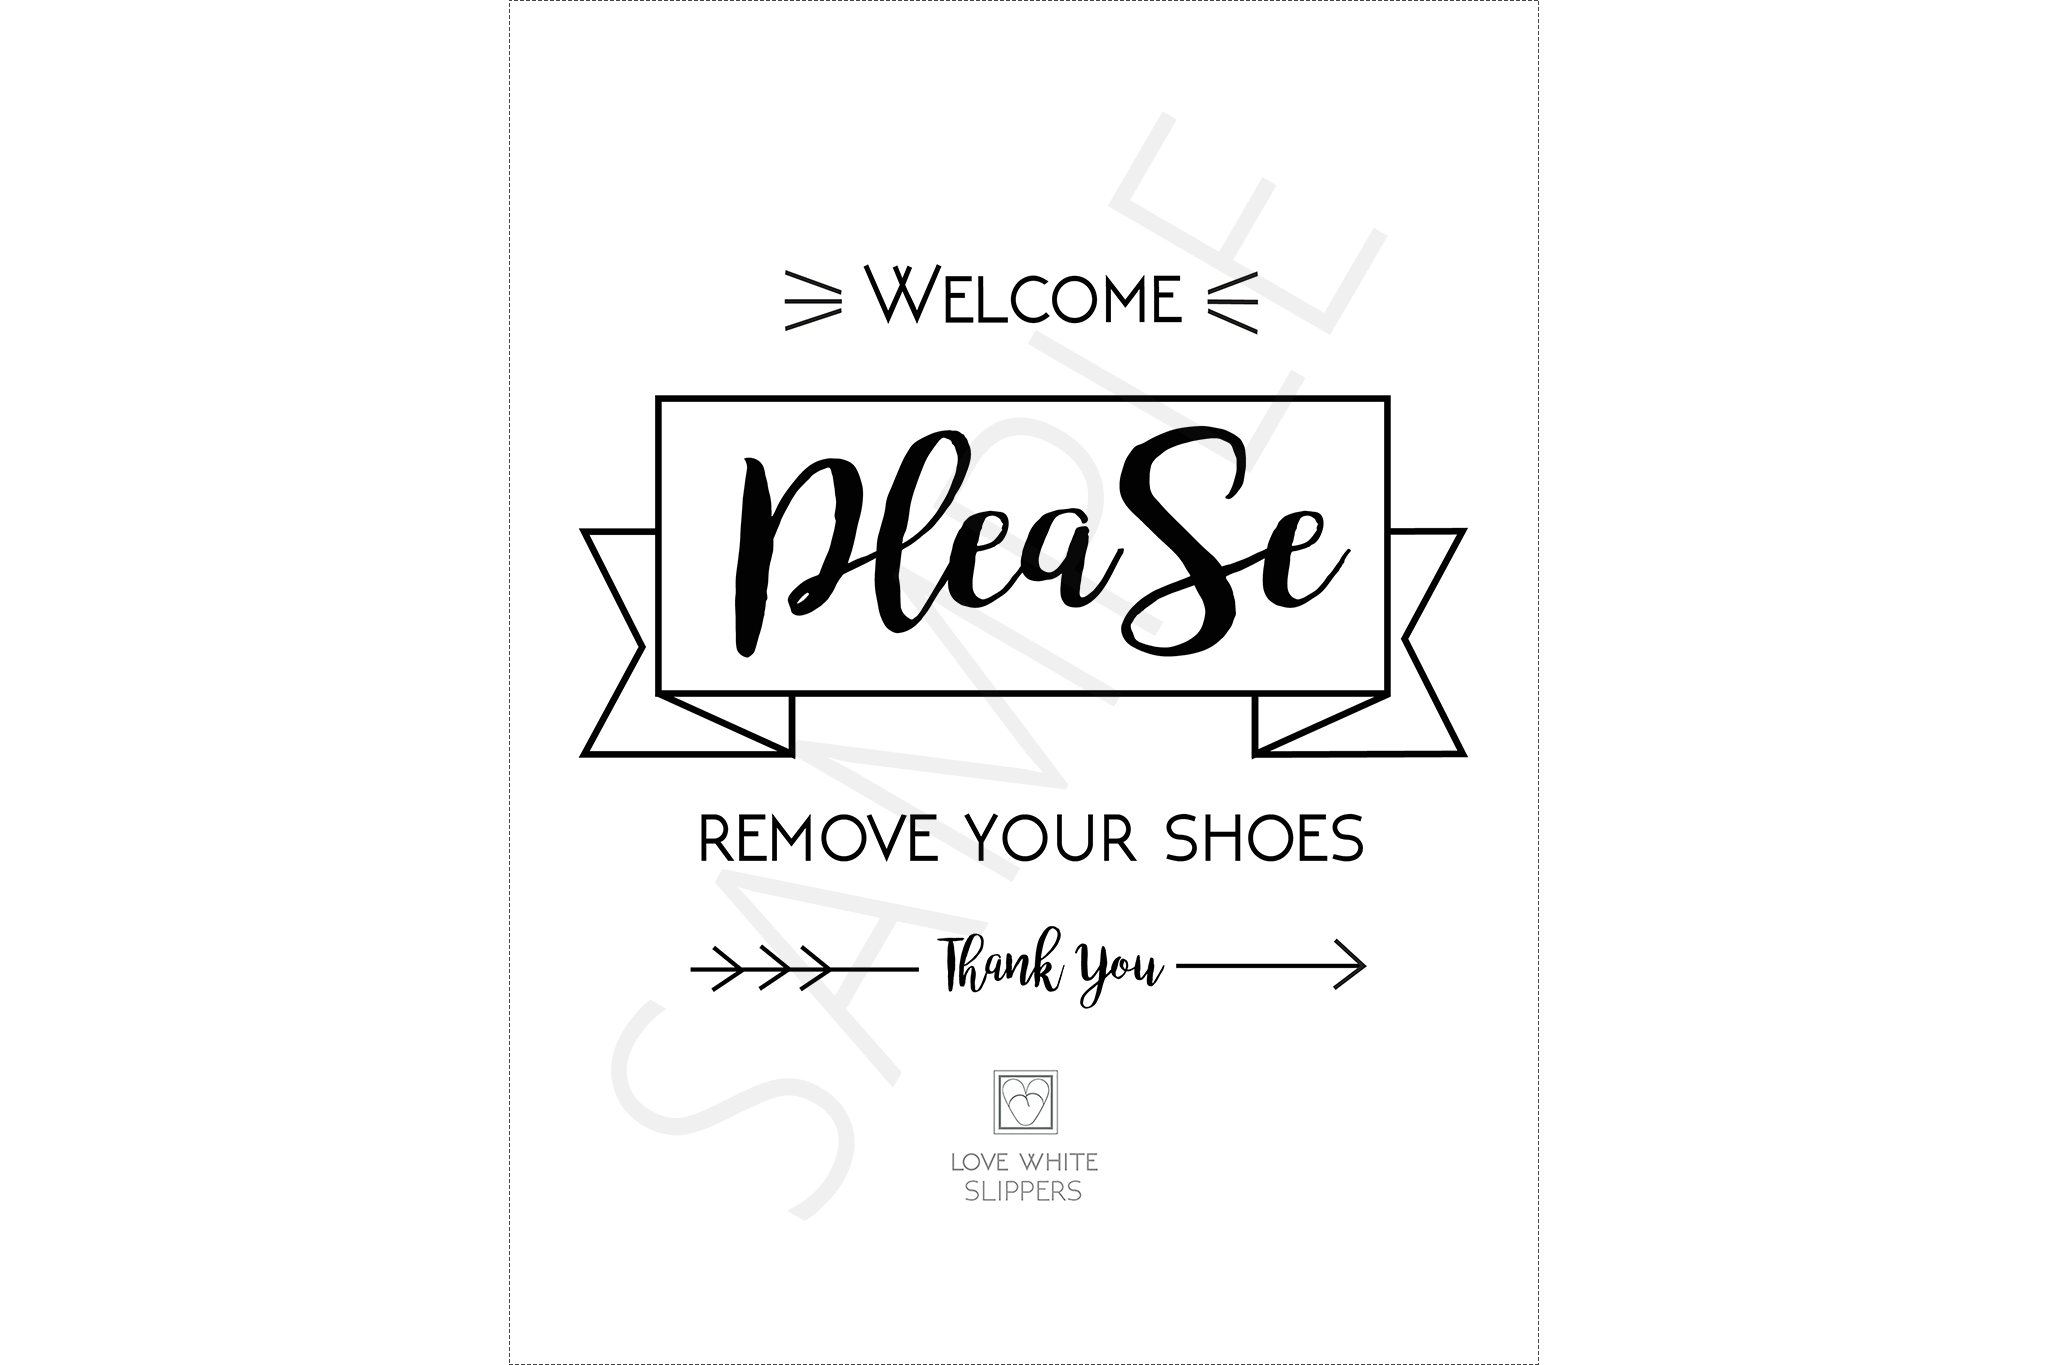 picture about Please Remove Your Shoes Sign Printable Free named Welcome, Be sure to Eliminate Your Footwear